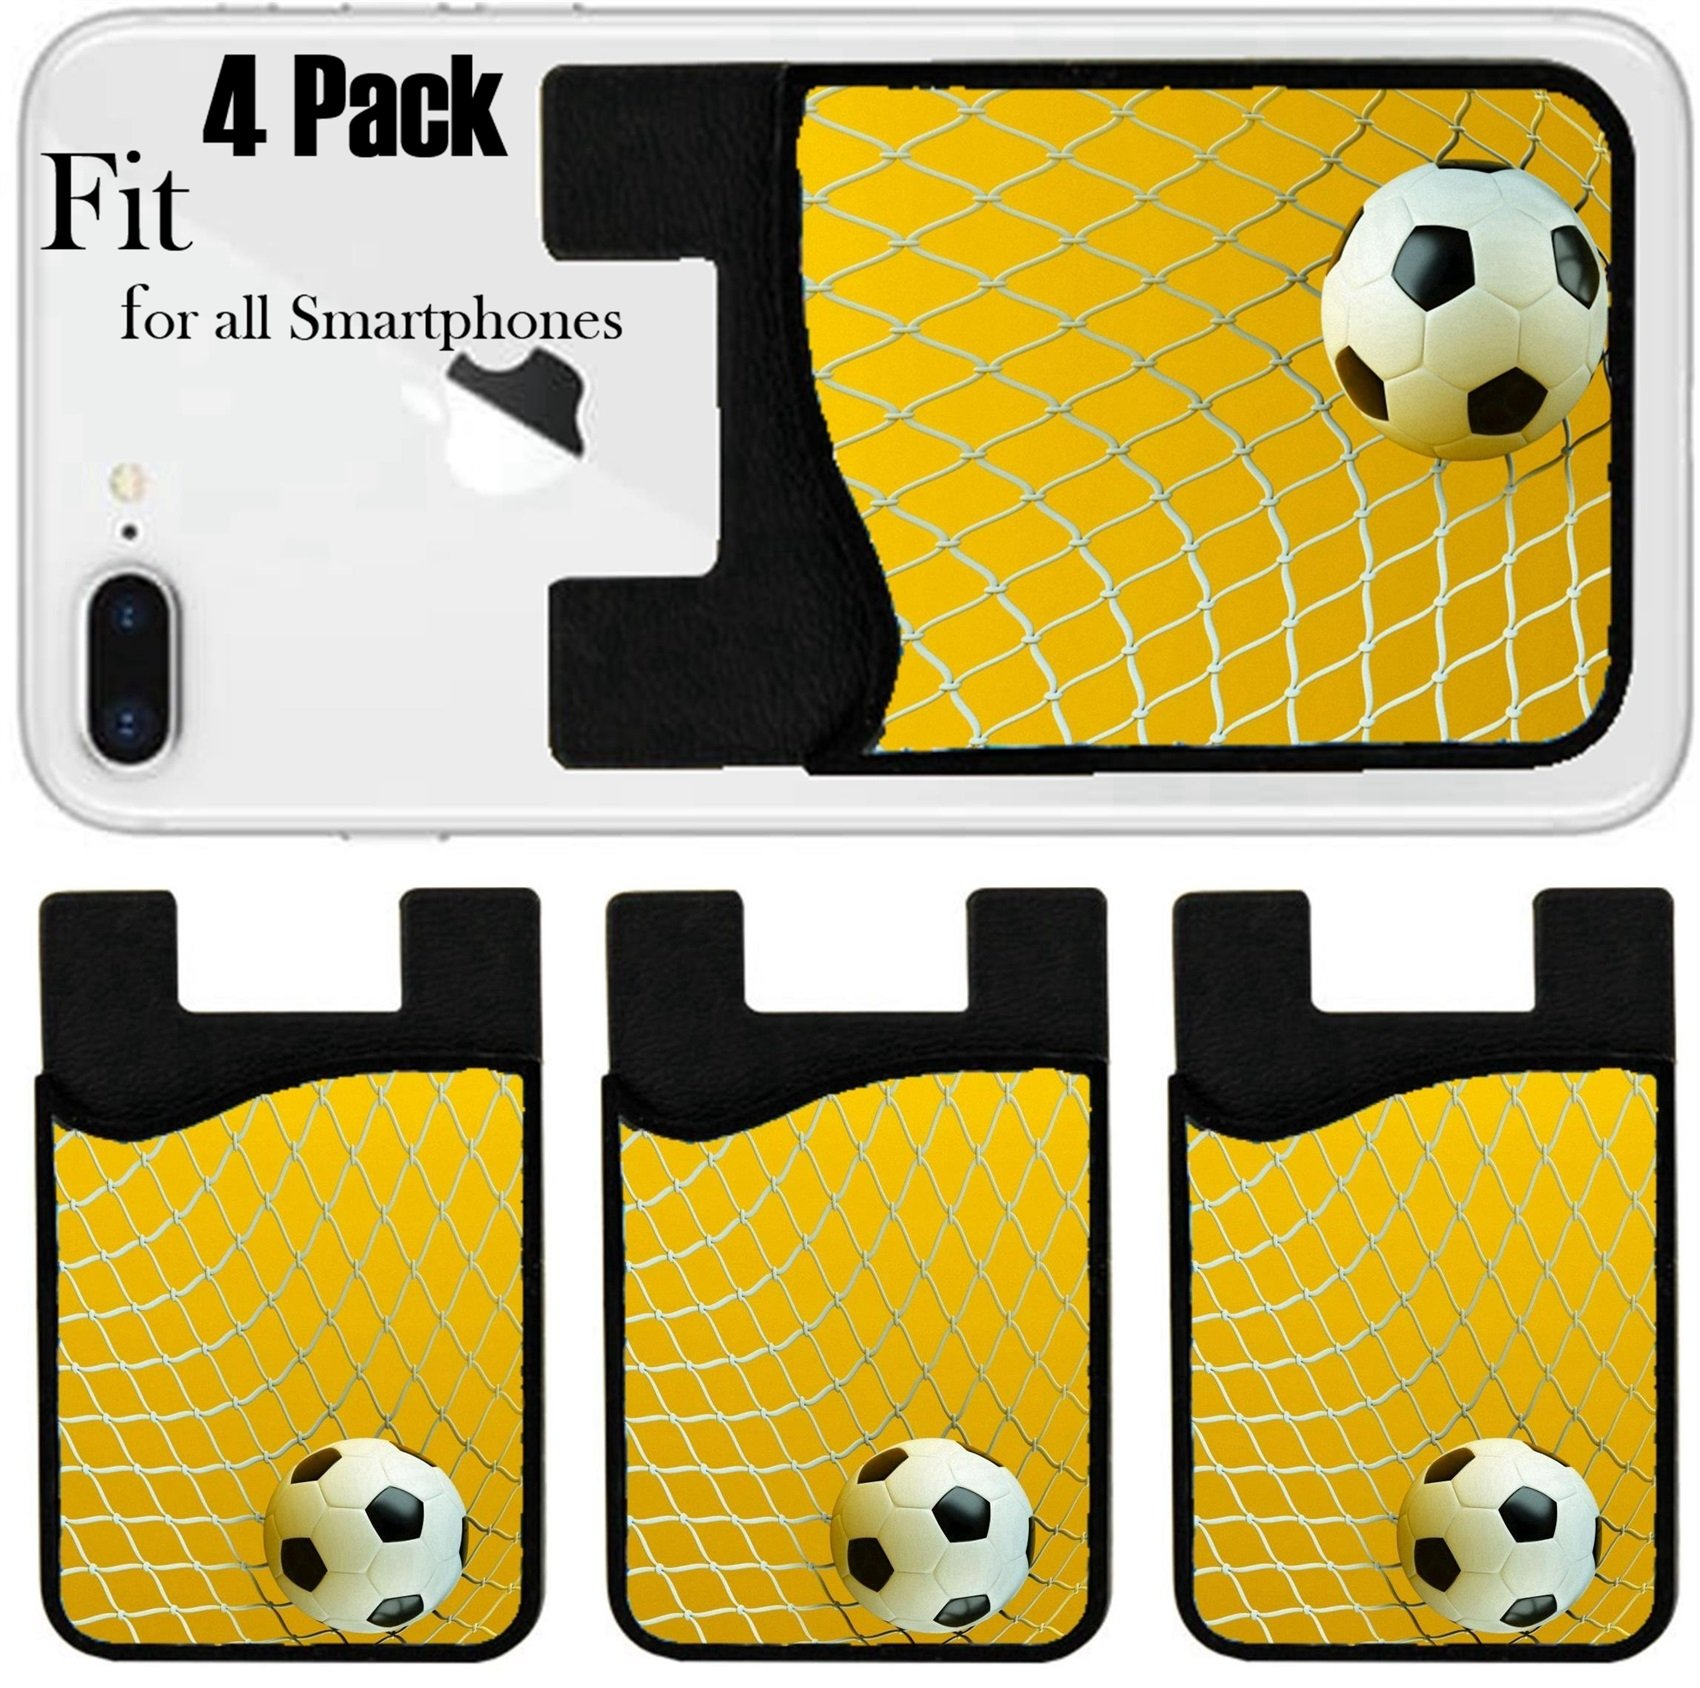 Liili Phone Card holder sleeve/wallet for iPhone Samsung Android and all smartphones with removable microfiber screen cleaner Silicone card Caddy(4 Pack) IMAGE ID: 11886094 a soccer ball in a net goa